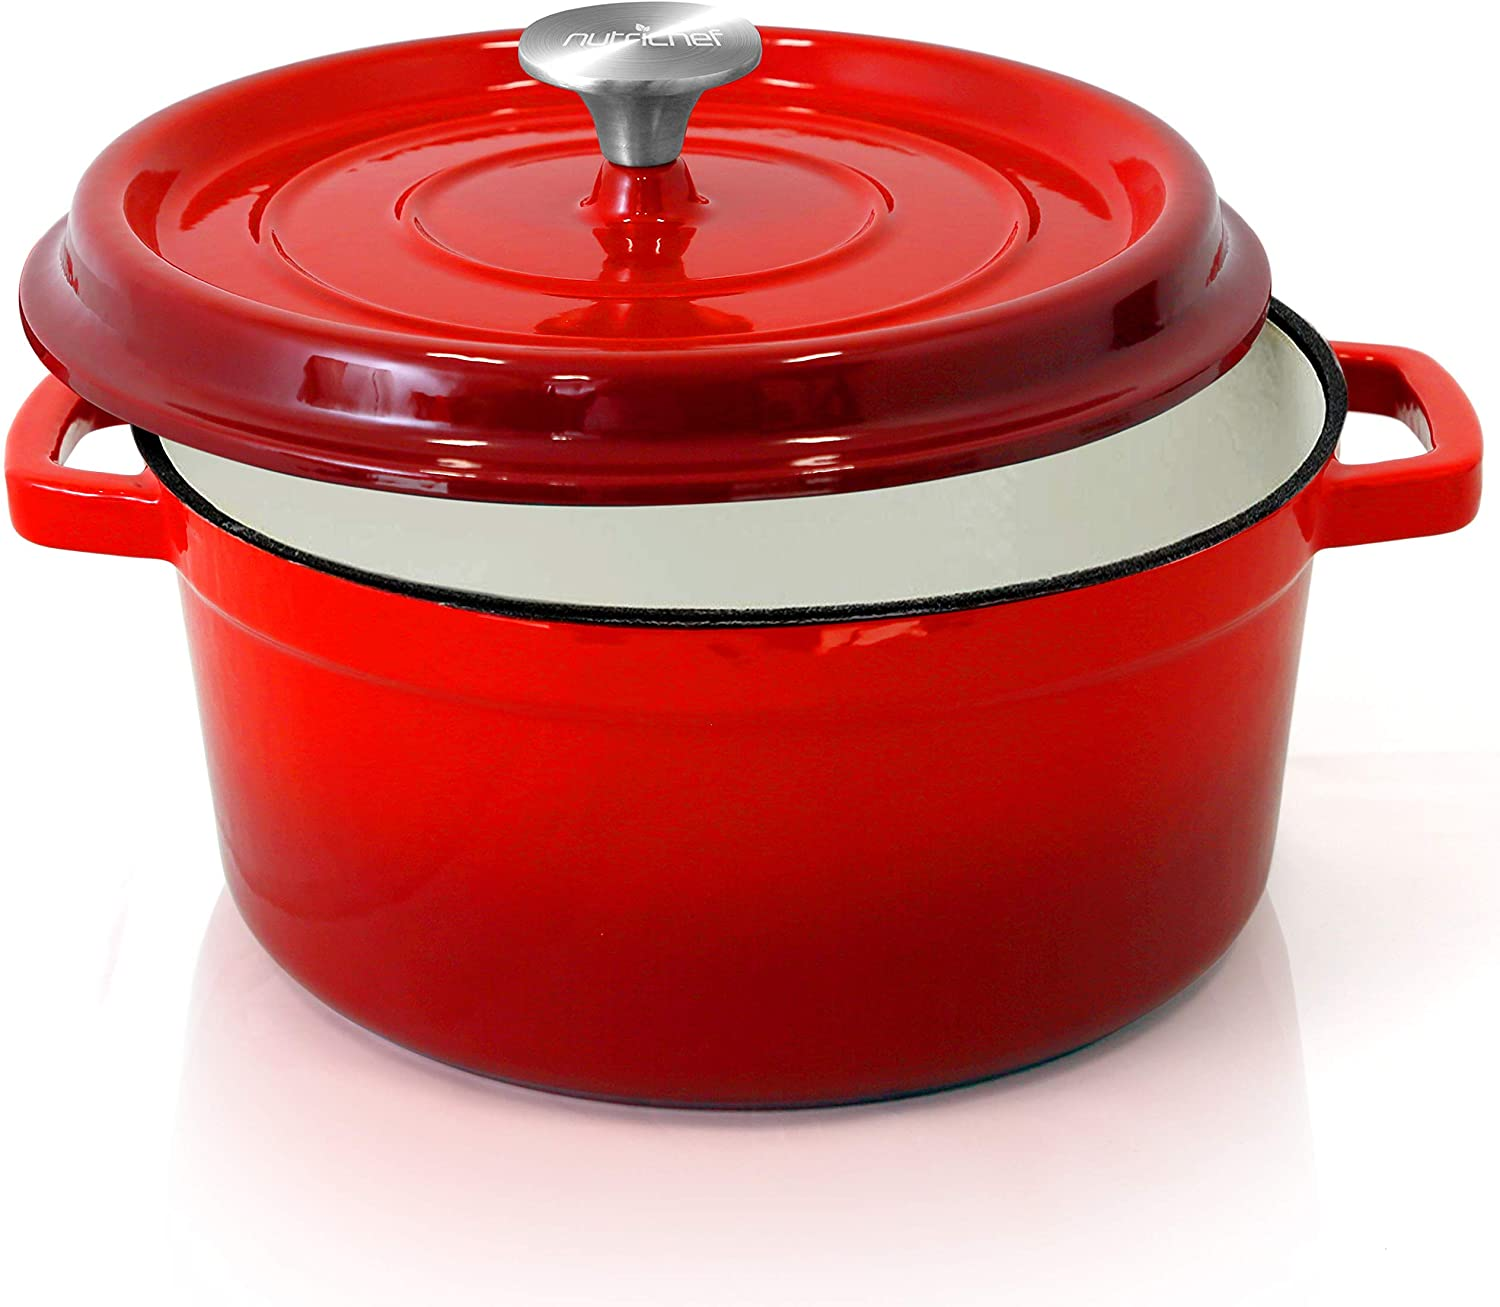 NutriChef Enameled Cast Iron Dutch Oven - 5-Quart Kitchen Round Dutch Oven Stovetop Casserole Cookware Braising Pot, Porcelain Enamel Coated Cast-Iron Baking Pots w/ Self Basting Lid - (Red)